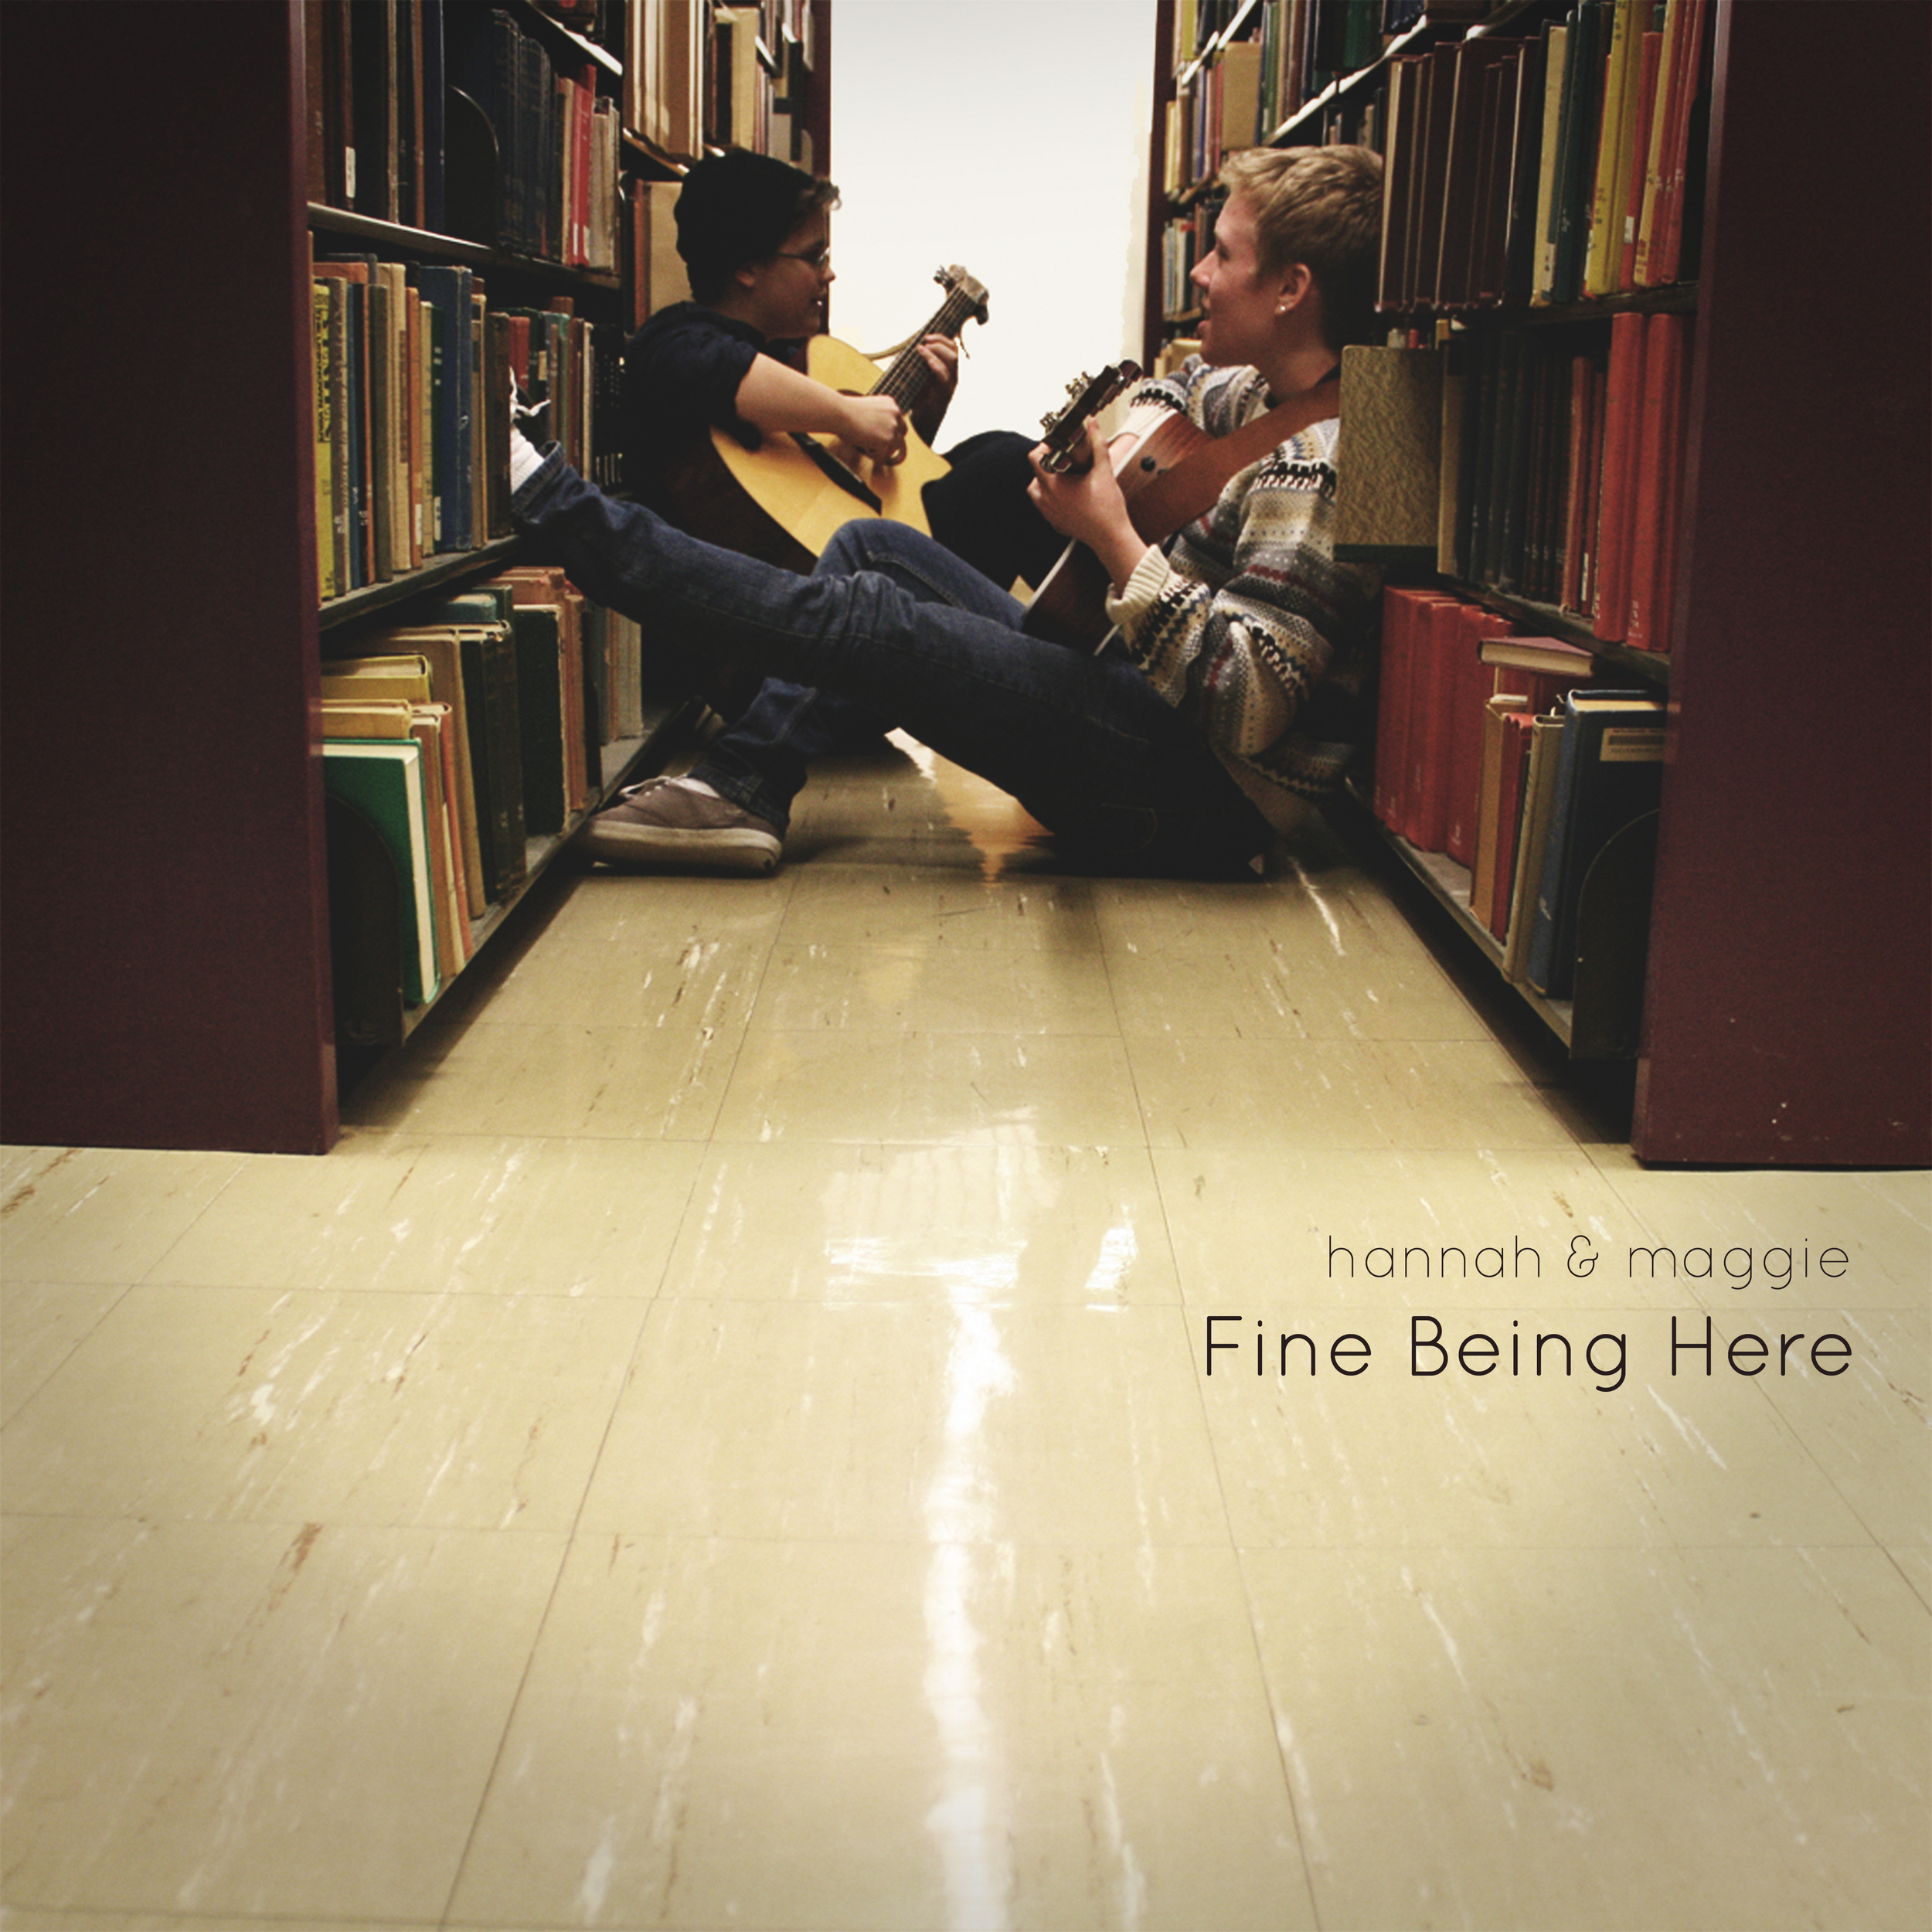 Fine Being Here